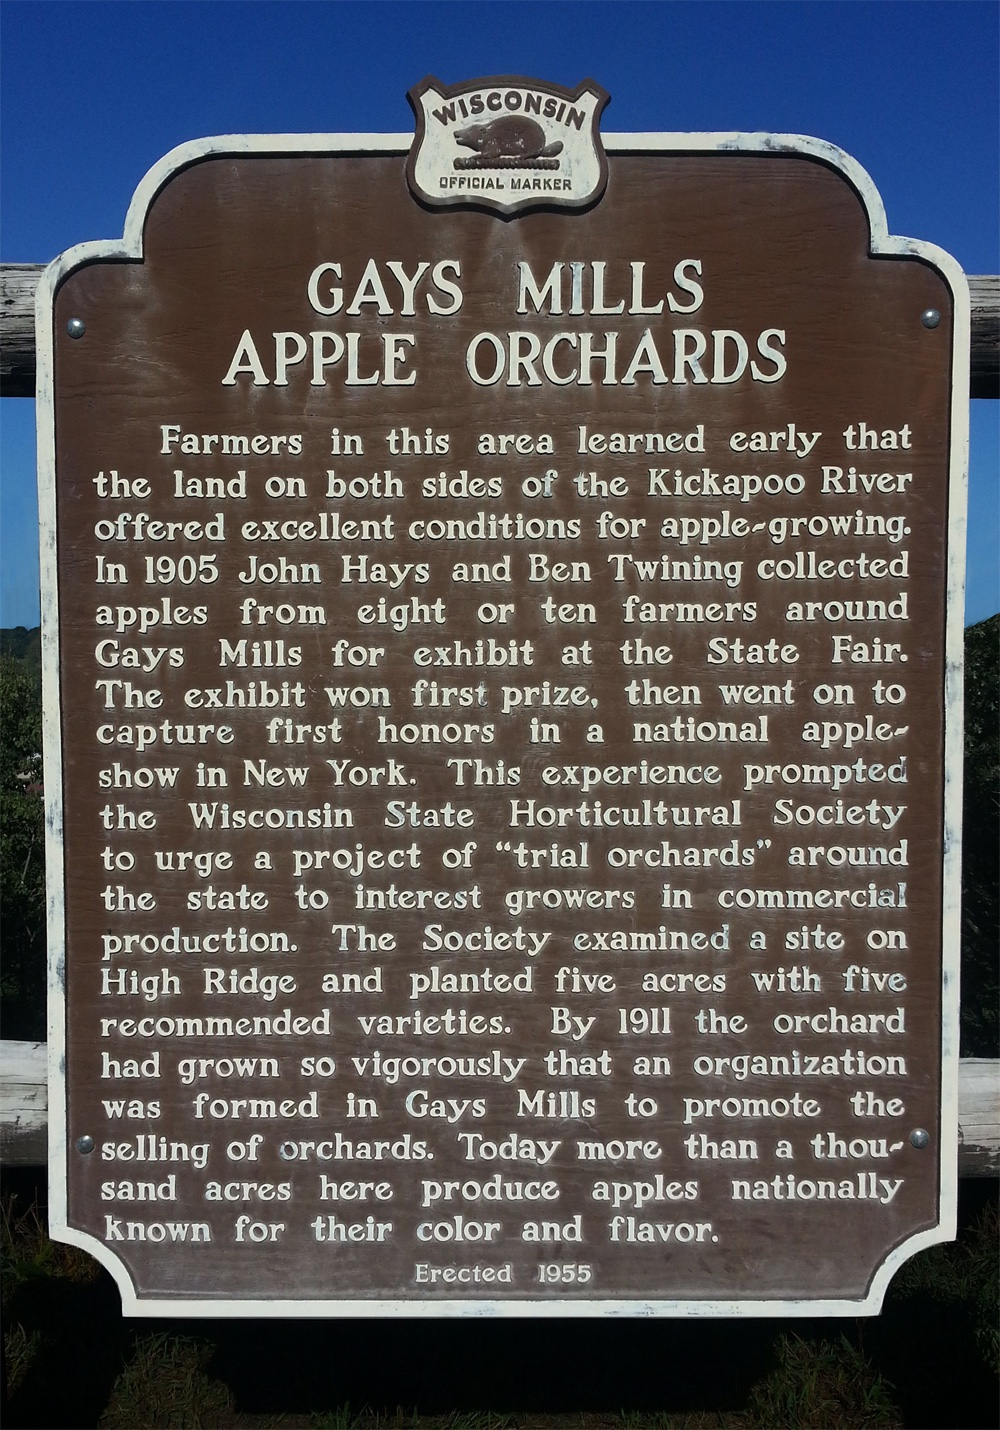 Gays Mills Apple Orchard Marker.